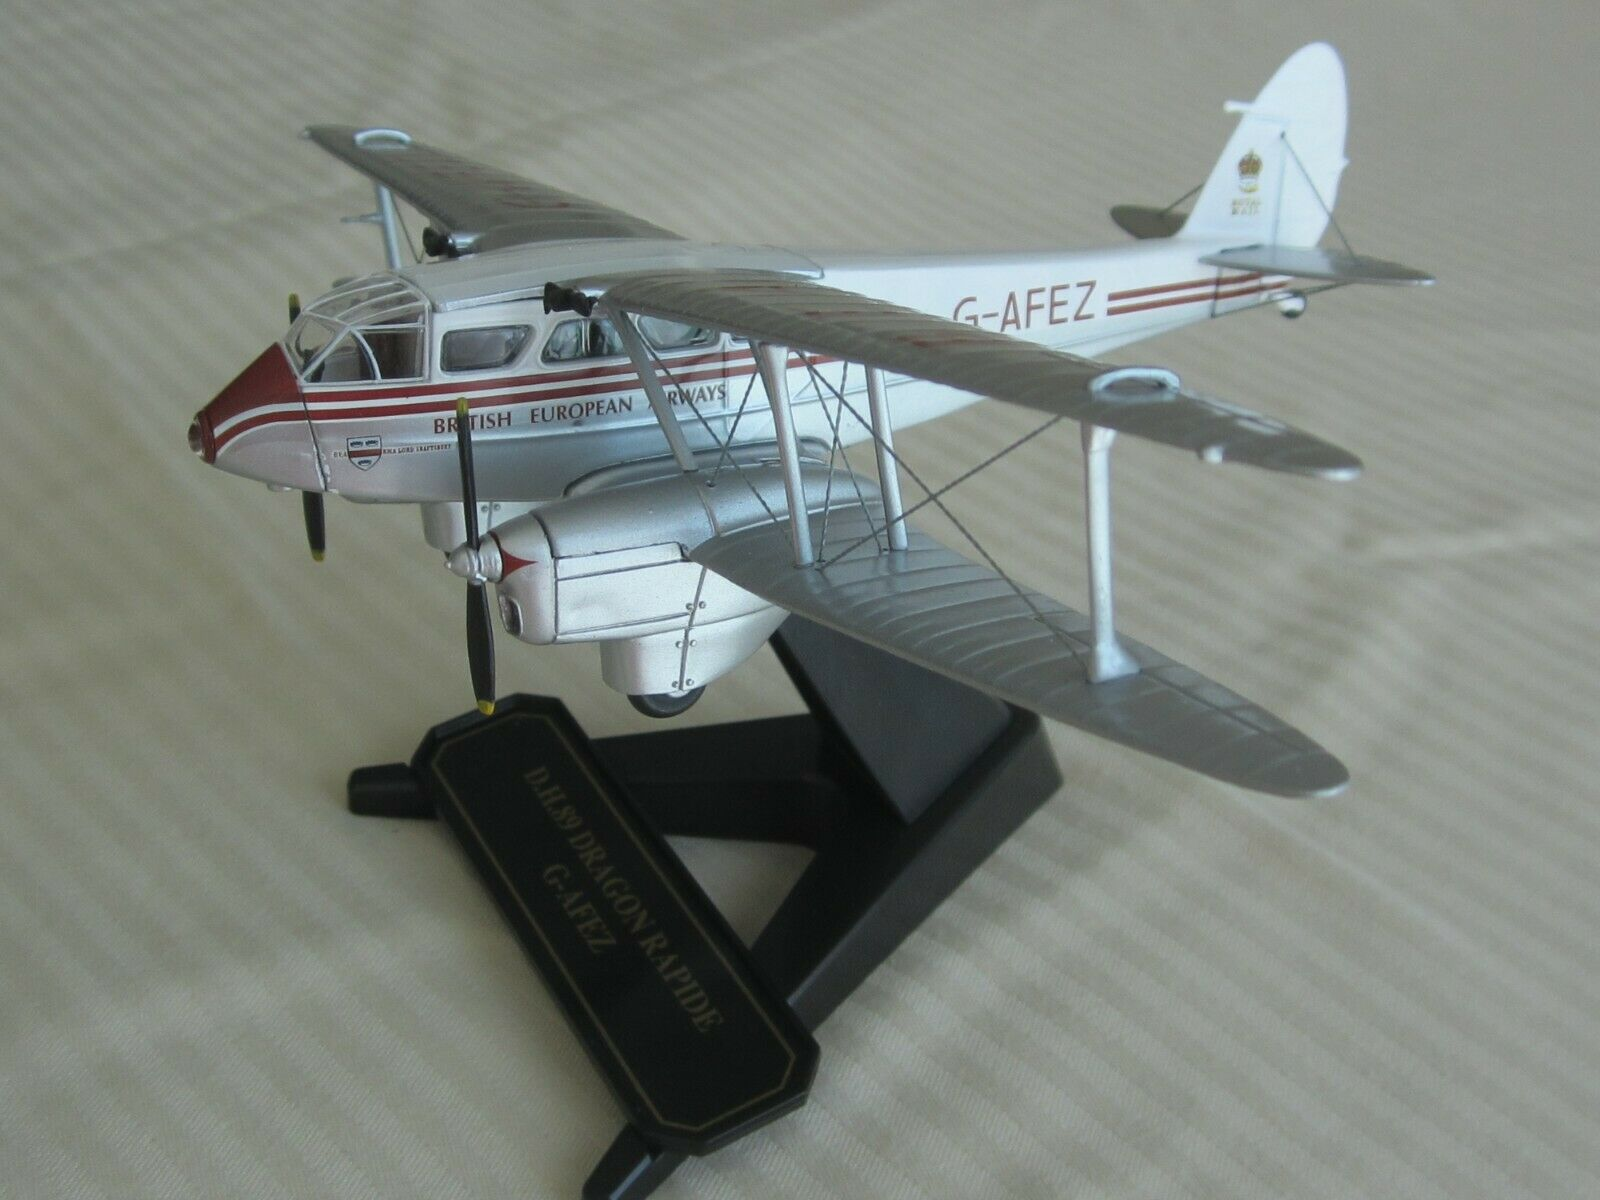 D.H.89 Dragon Rapide, 1 72 scale, scale, scale, die-cast model by Oxford 9208b7